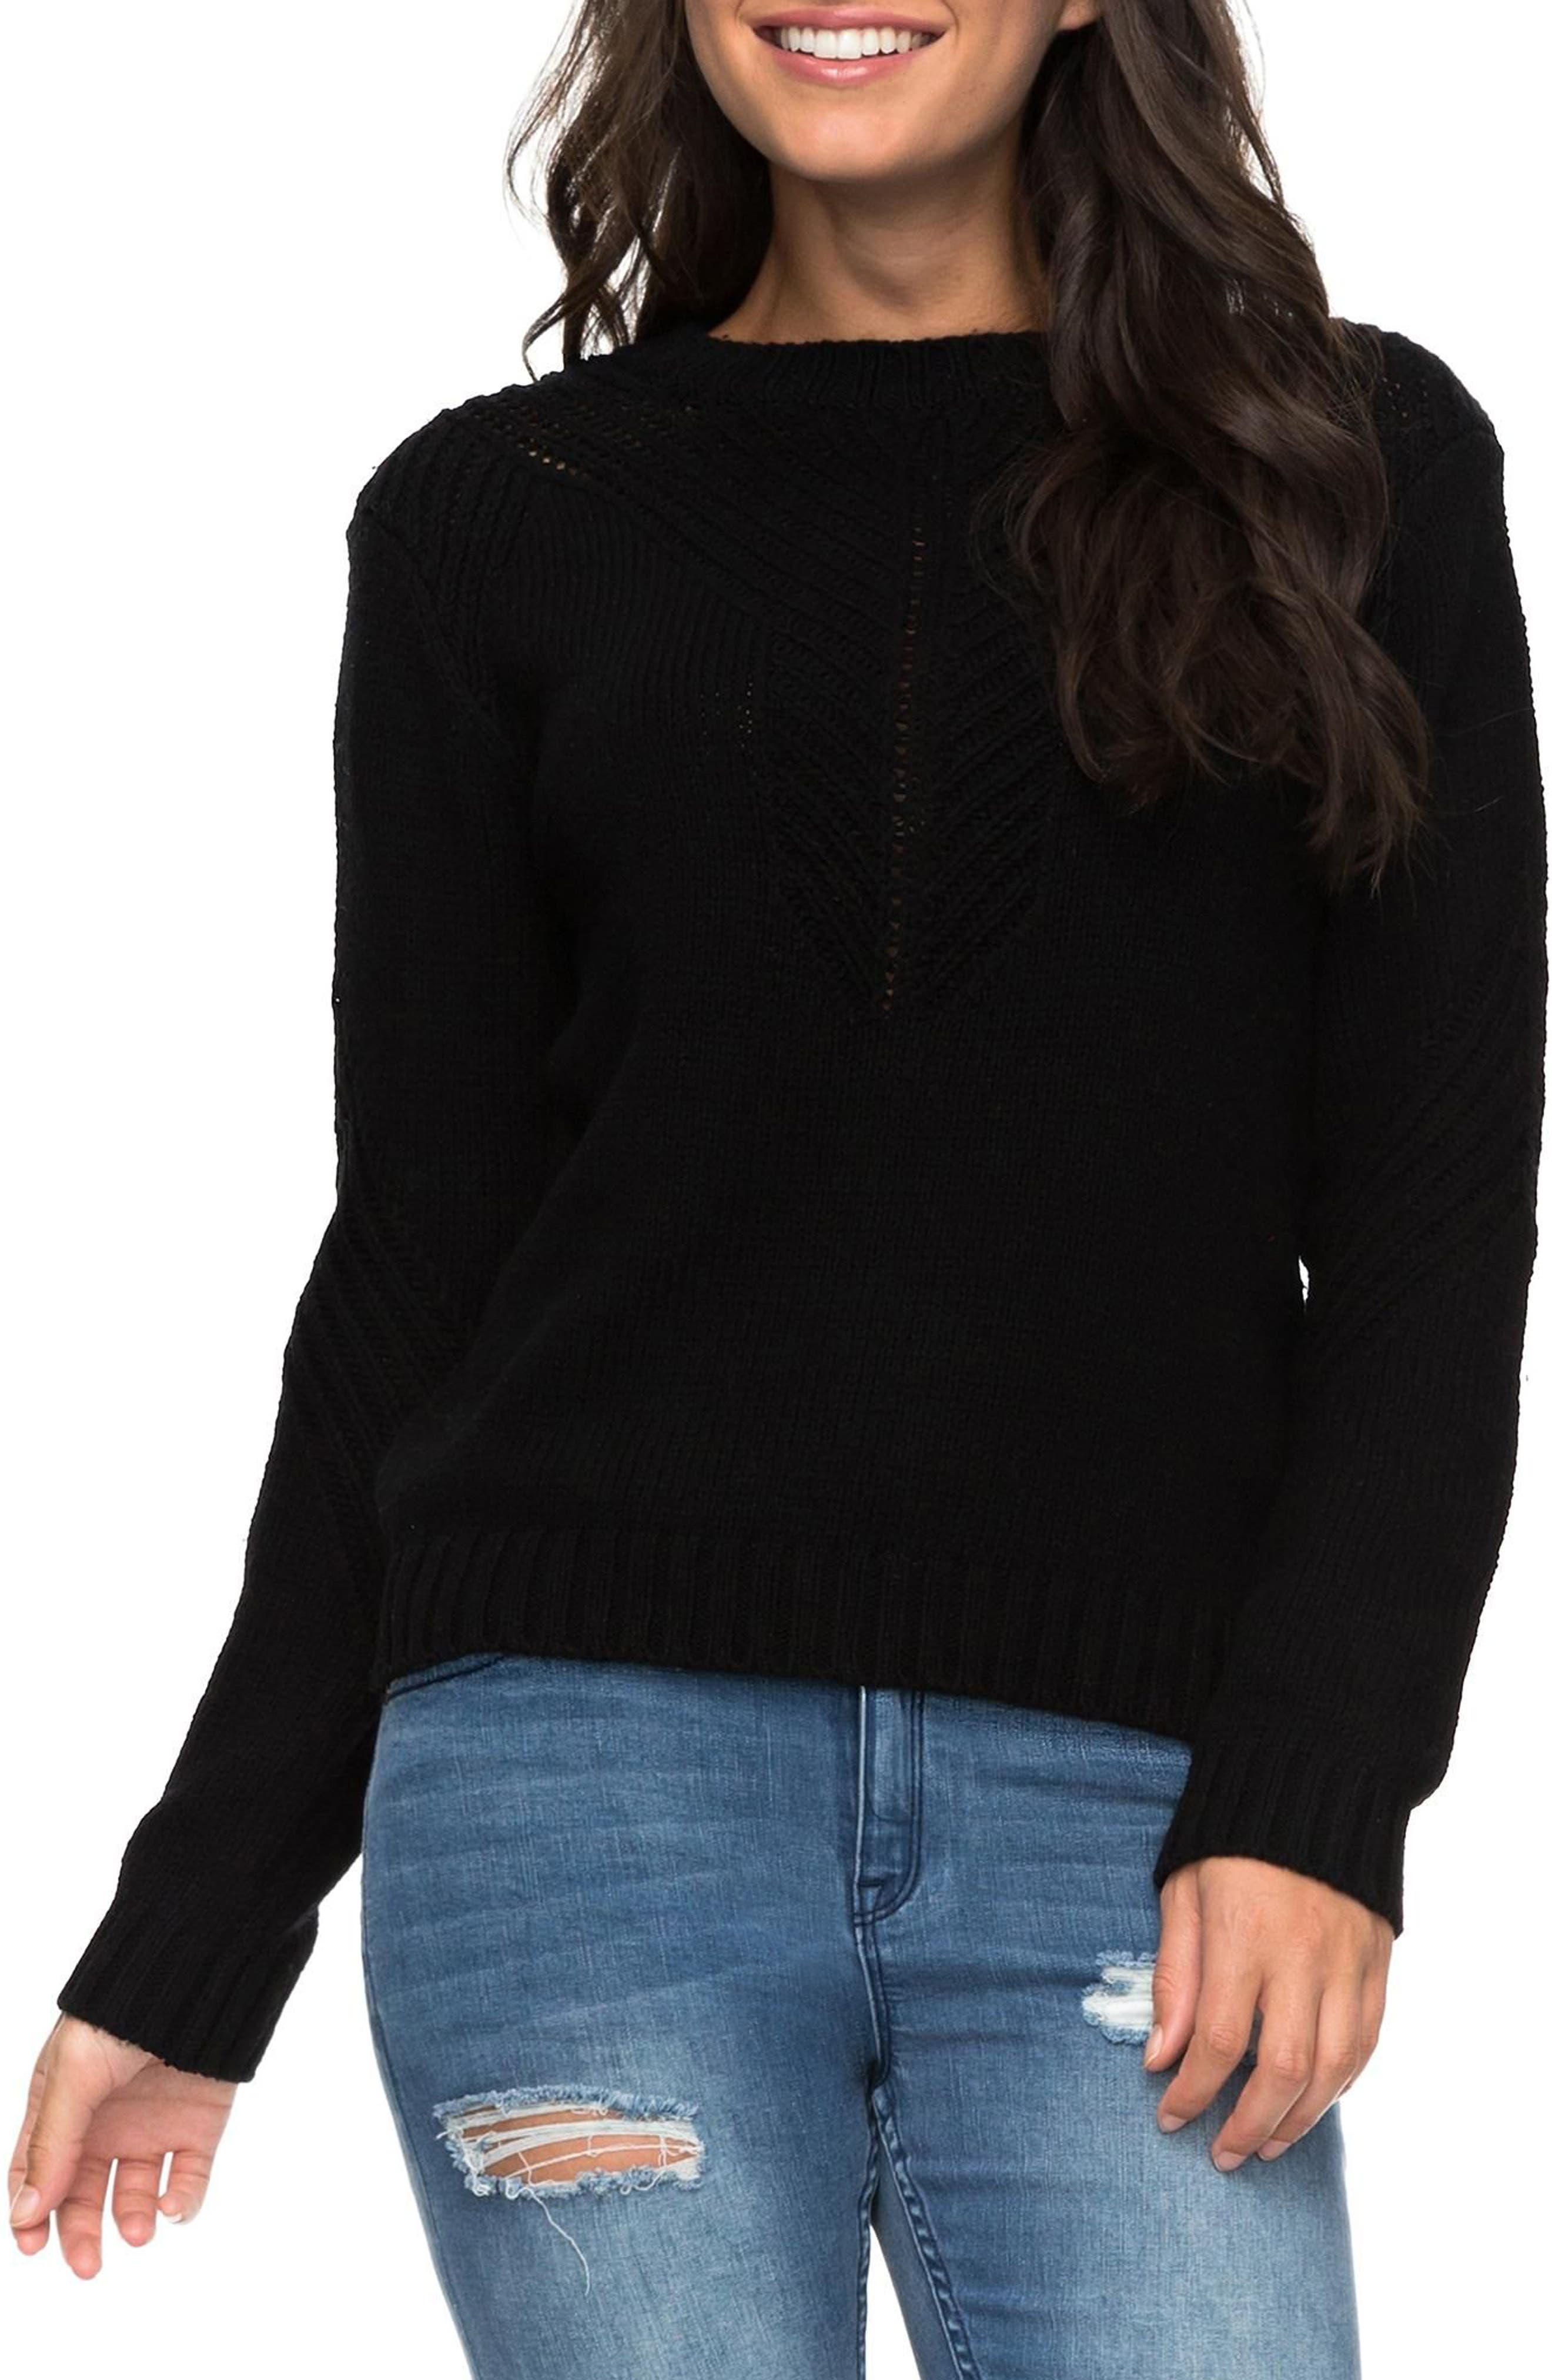 Take Over the World Sweater,                         Main,                         color, Anthracite